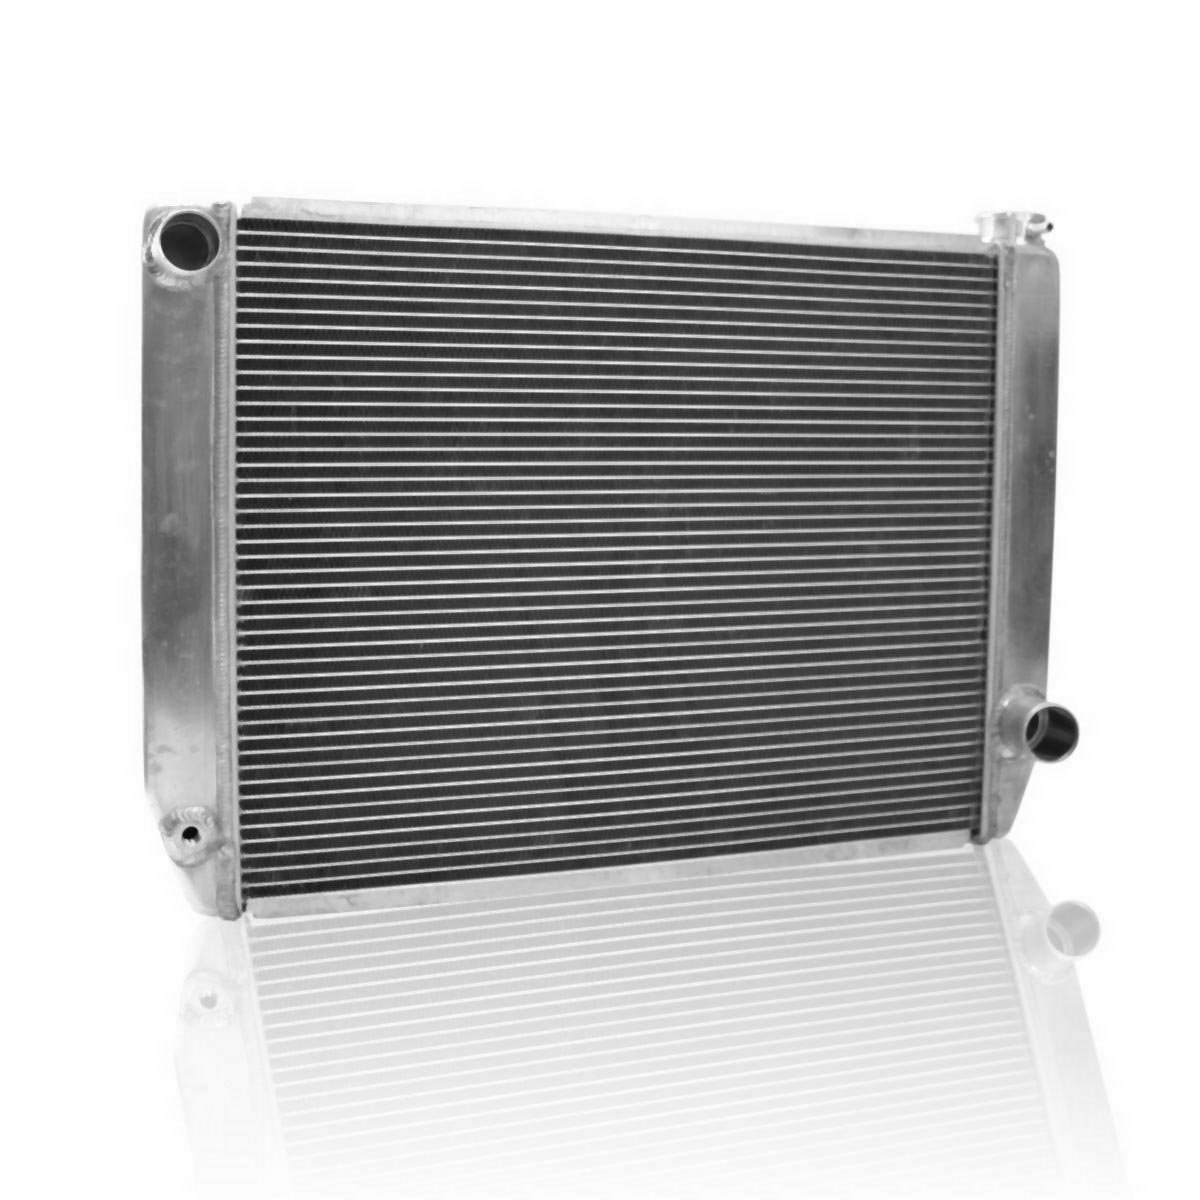 Griffin Radiator 1-25242-X ClassicCool 27.5 x 19 2-Row Universal Fit Radiator with 1 Tube and Top, Left, Bottom, Right Outlets